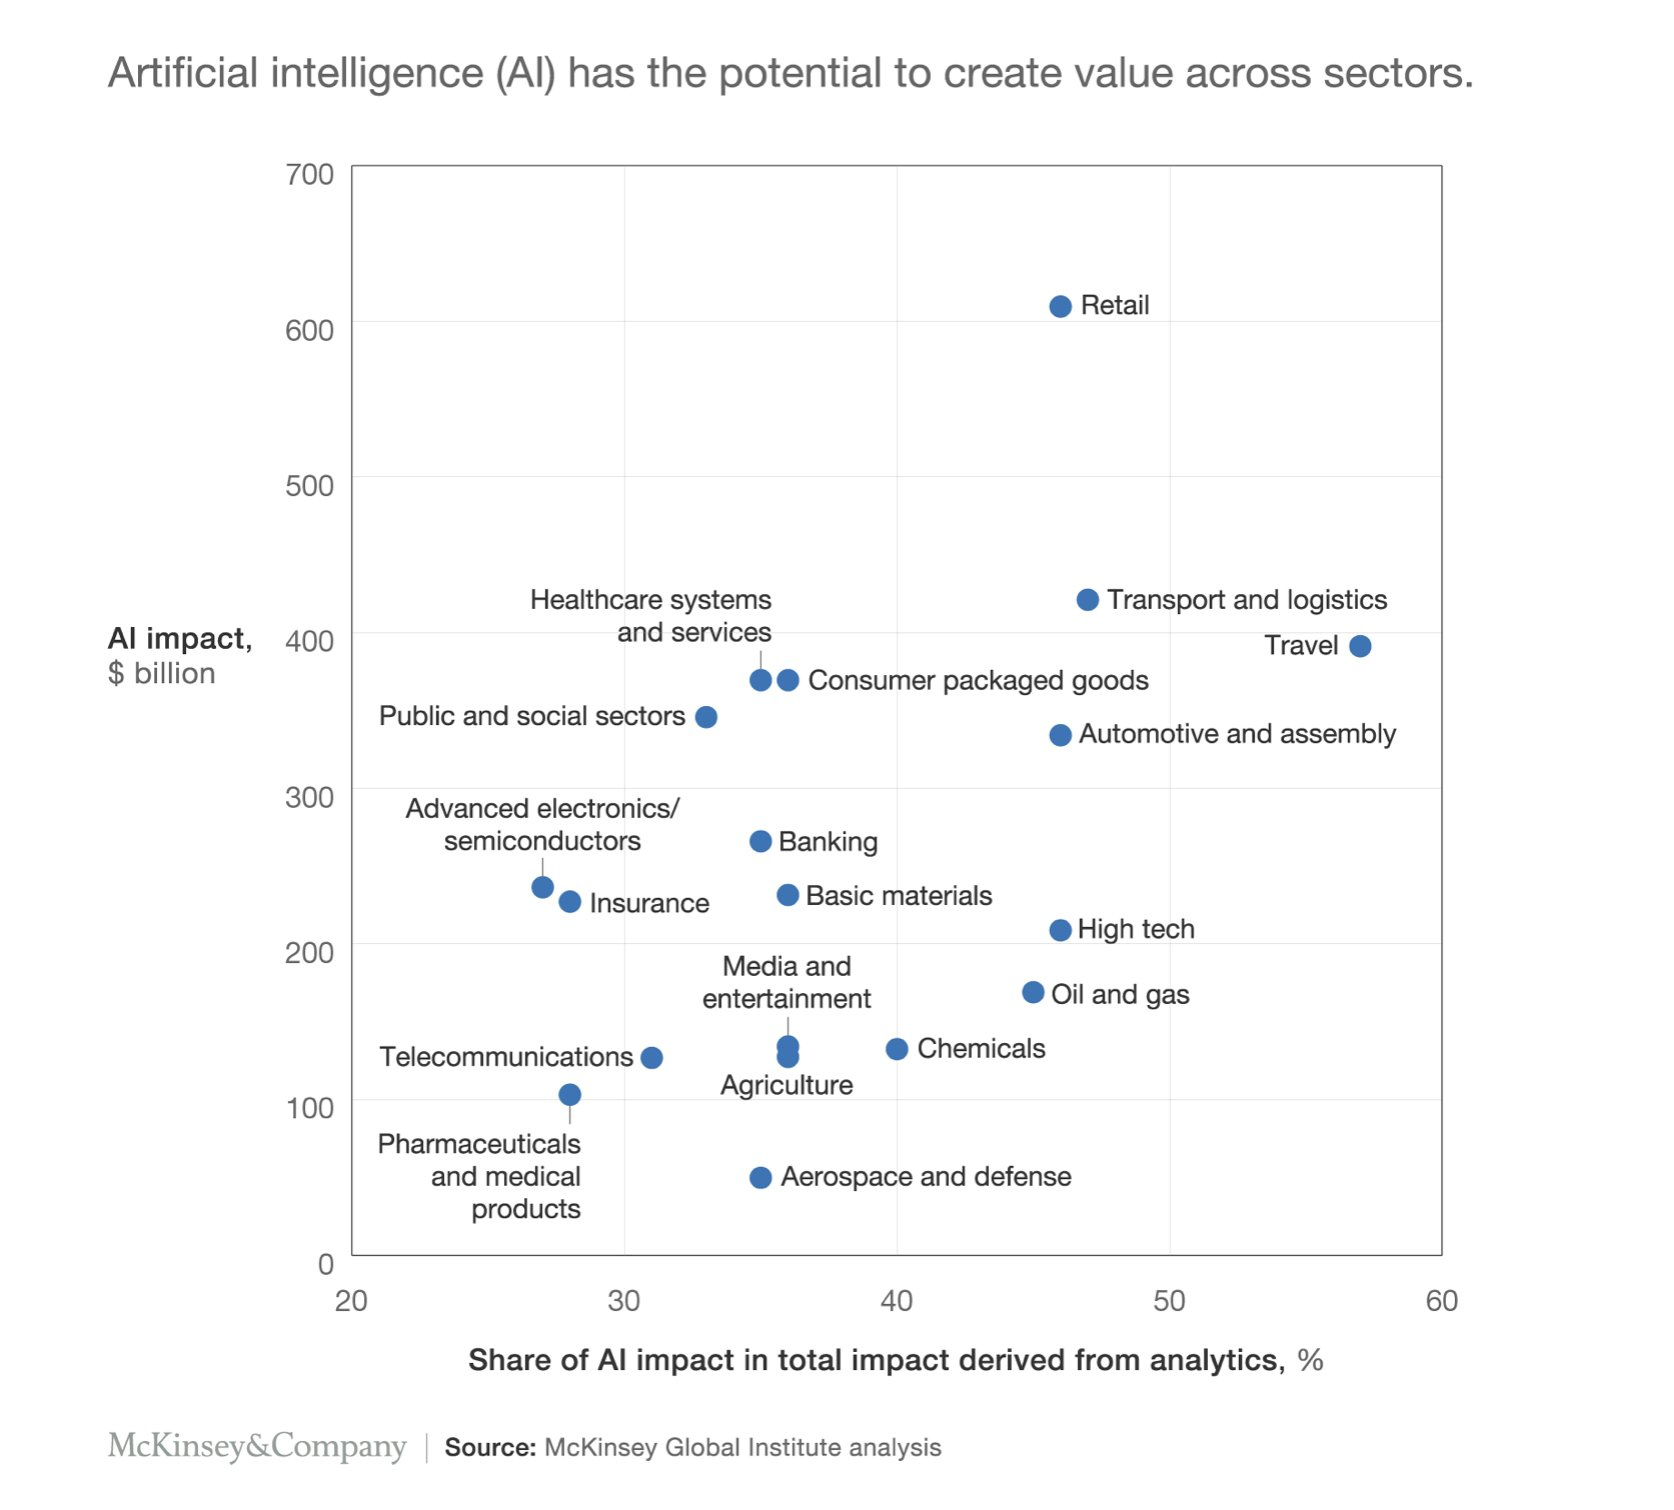 AI impact worldwide across sectors